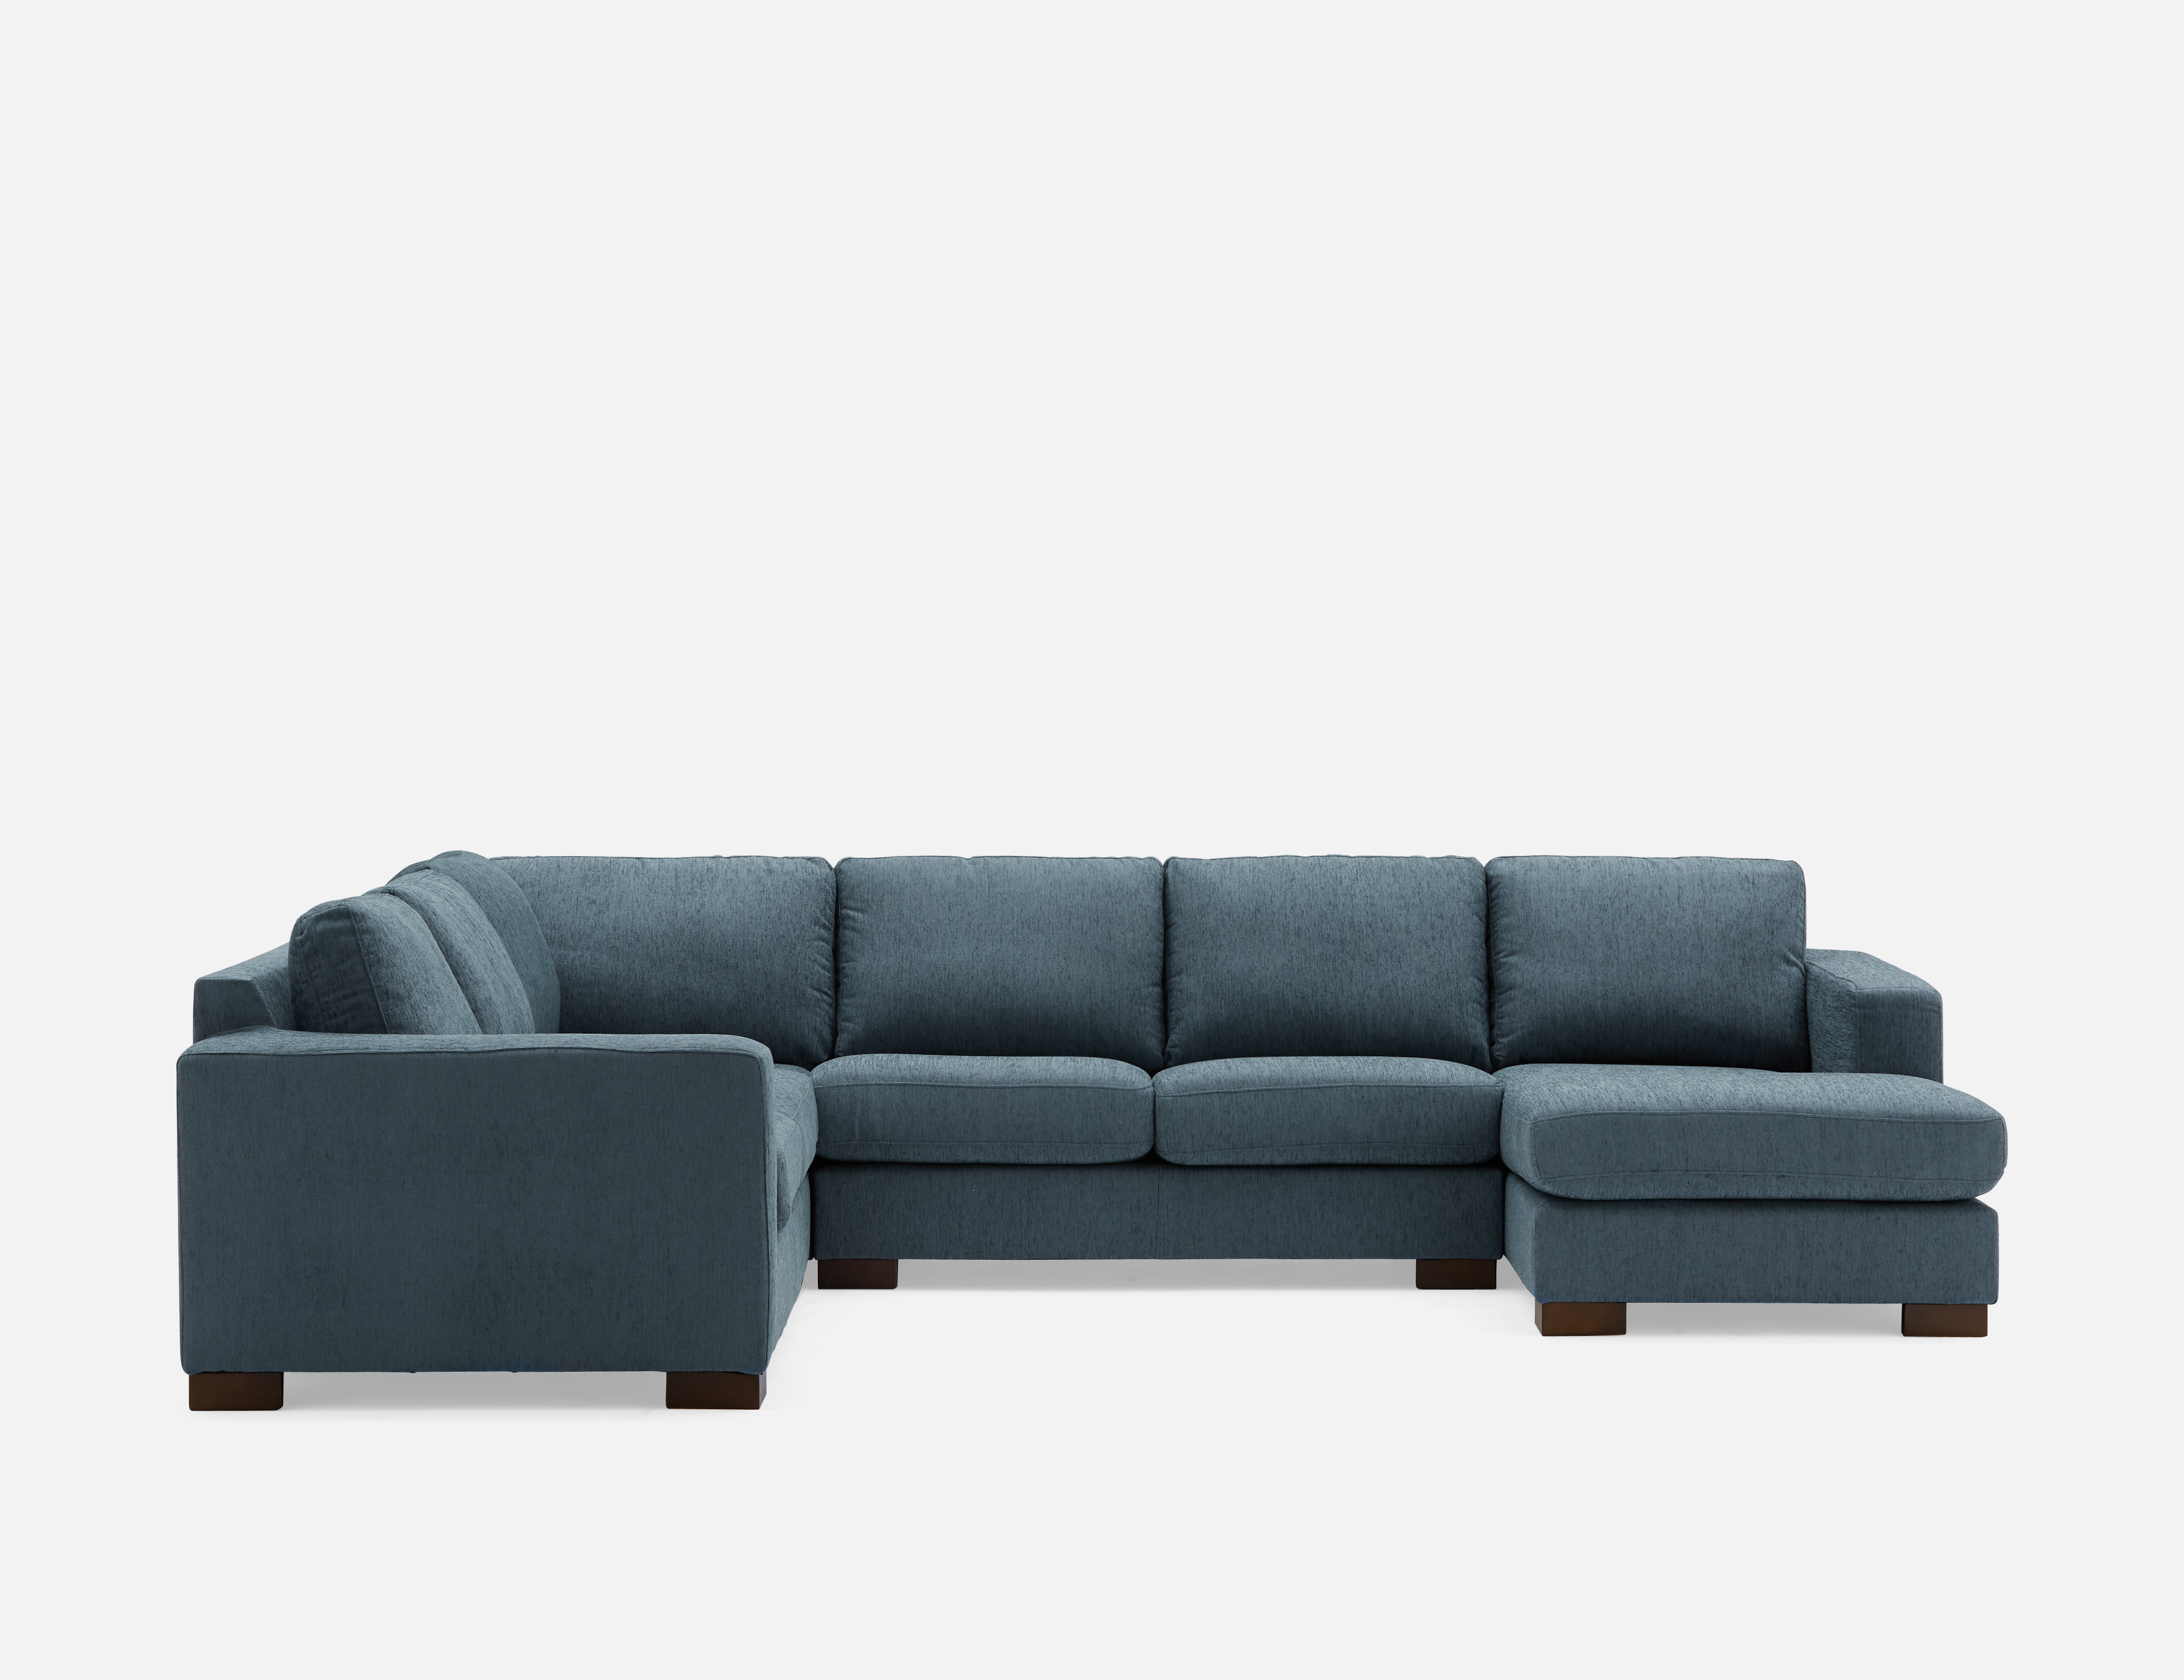 Remarkable Monroe Light Blue Sectional Sofa In 2019 Grey Sectional Ncnpc Chair Design For Home Ncnpcorg